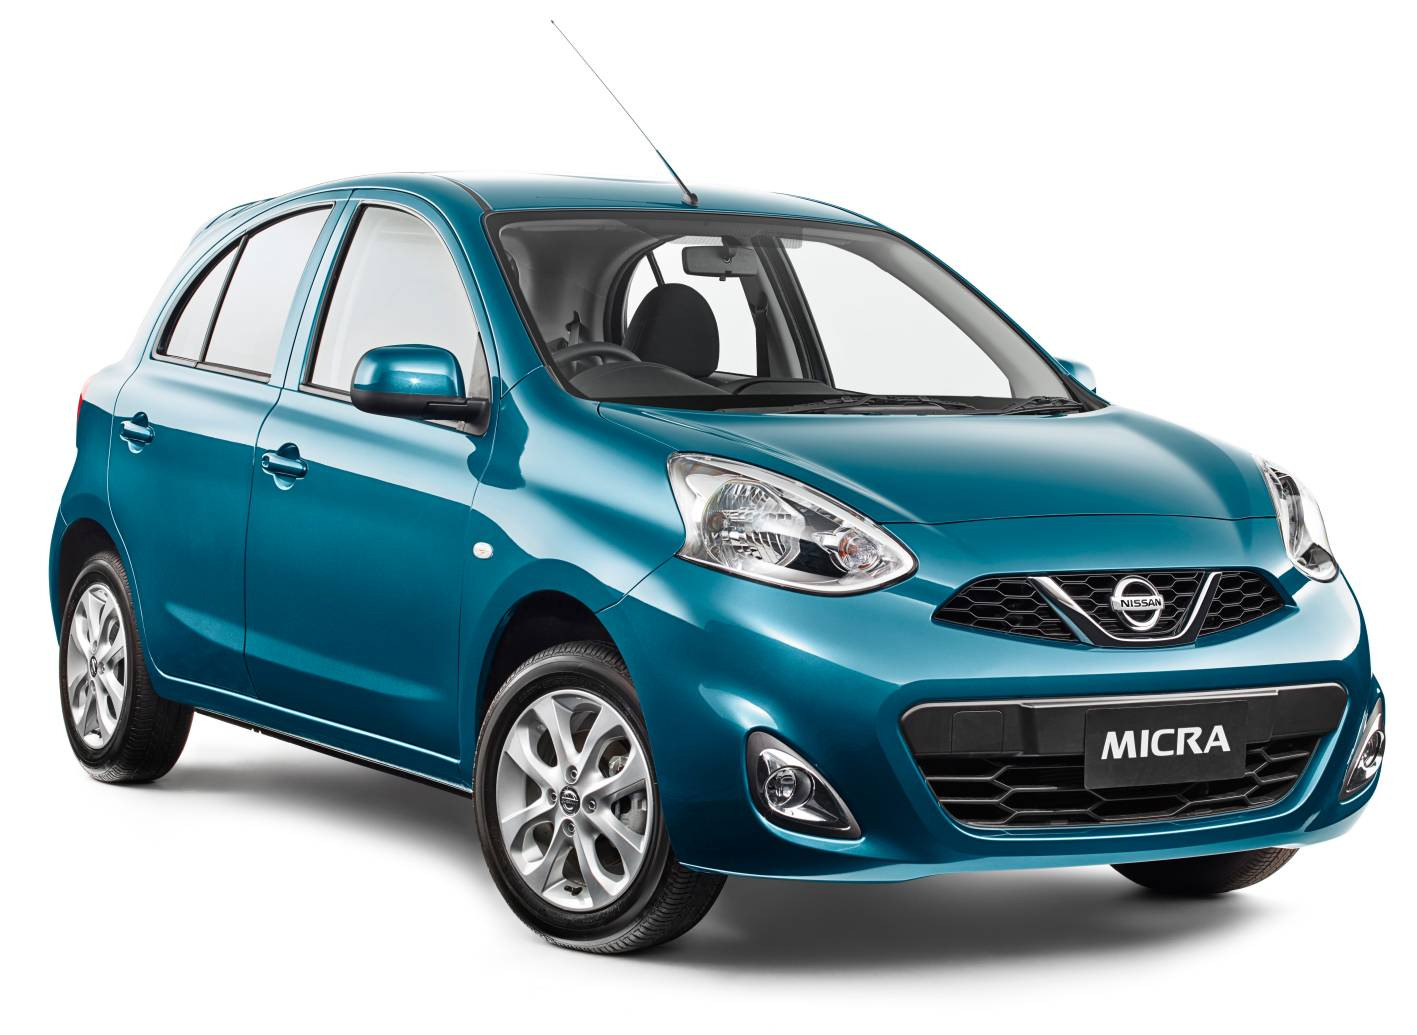 2015 nissan micra pricing and specifications photos. Black Bedroom Furniture Sets. Home Design Ideas